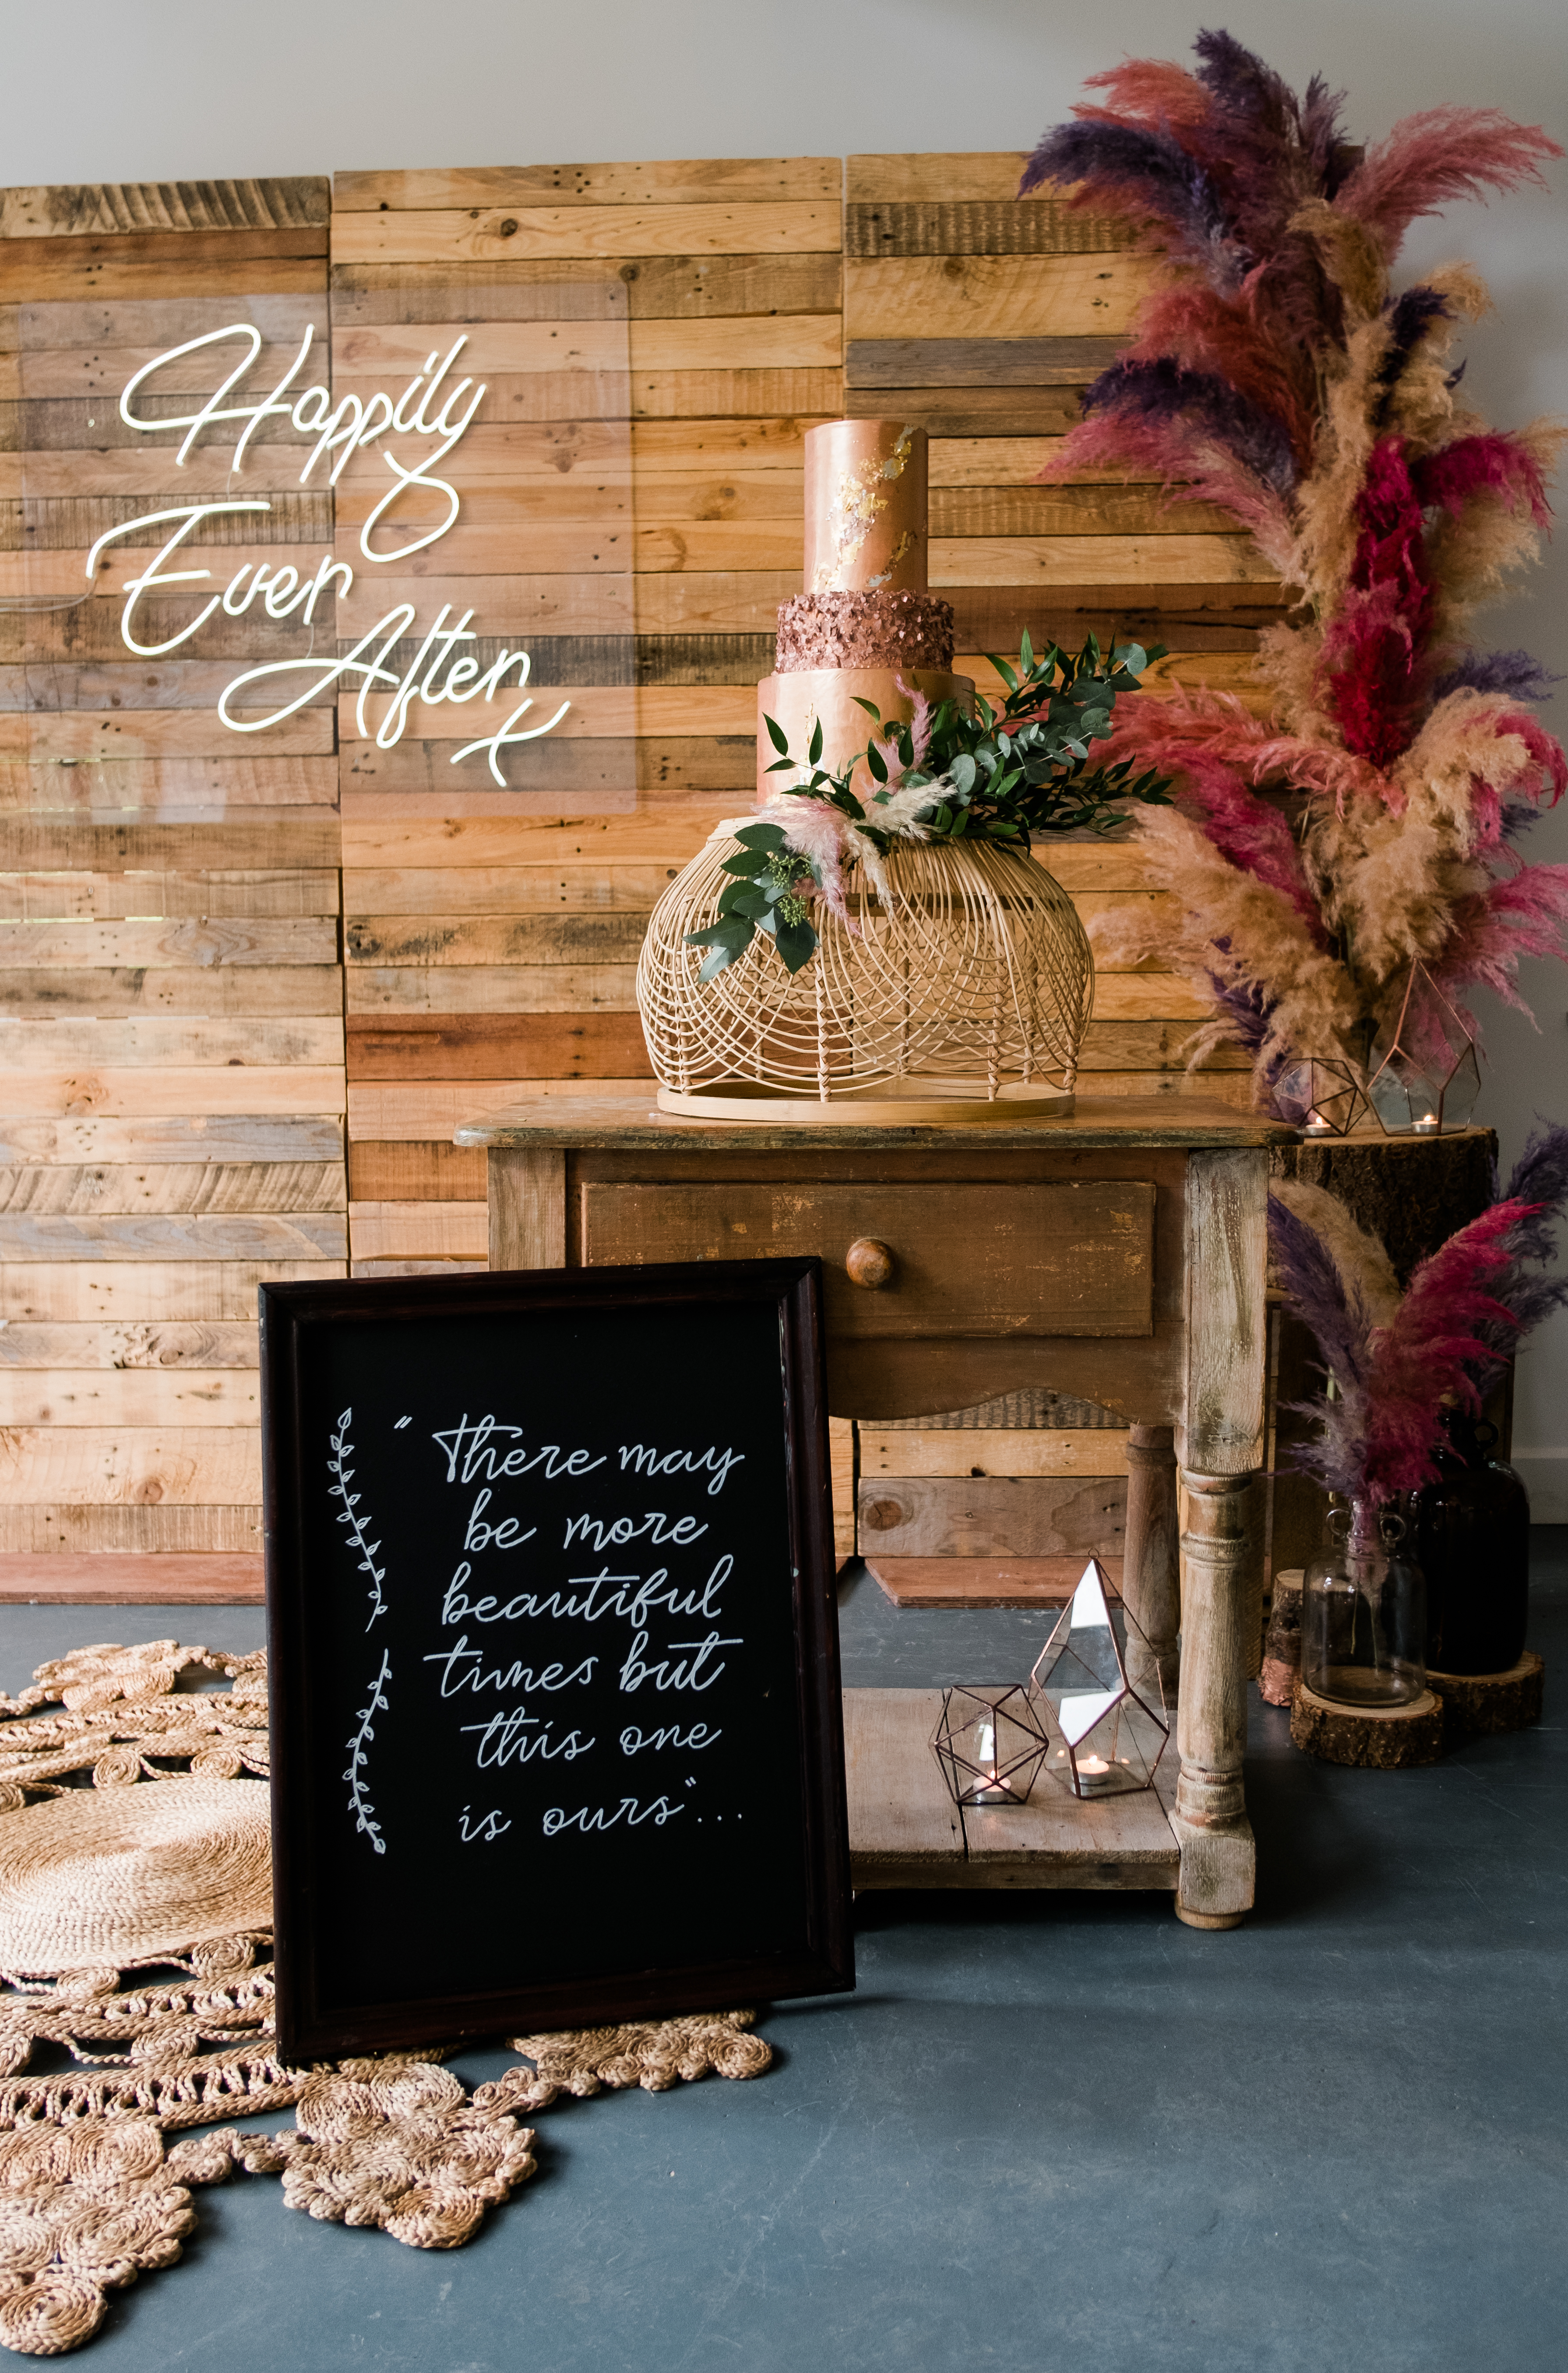 Neon sign and wooden backdrop